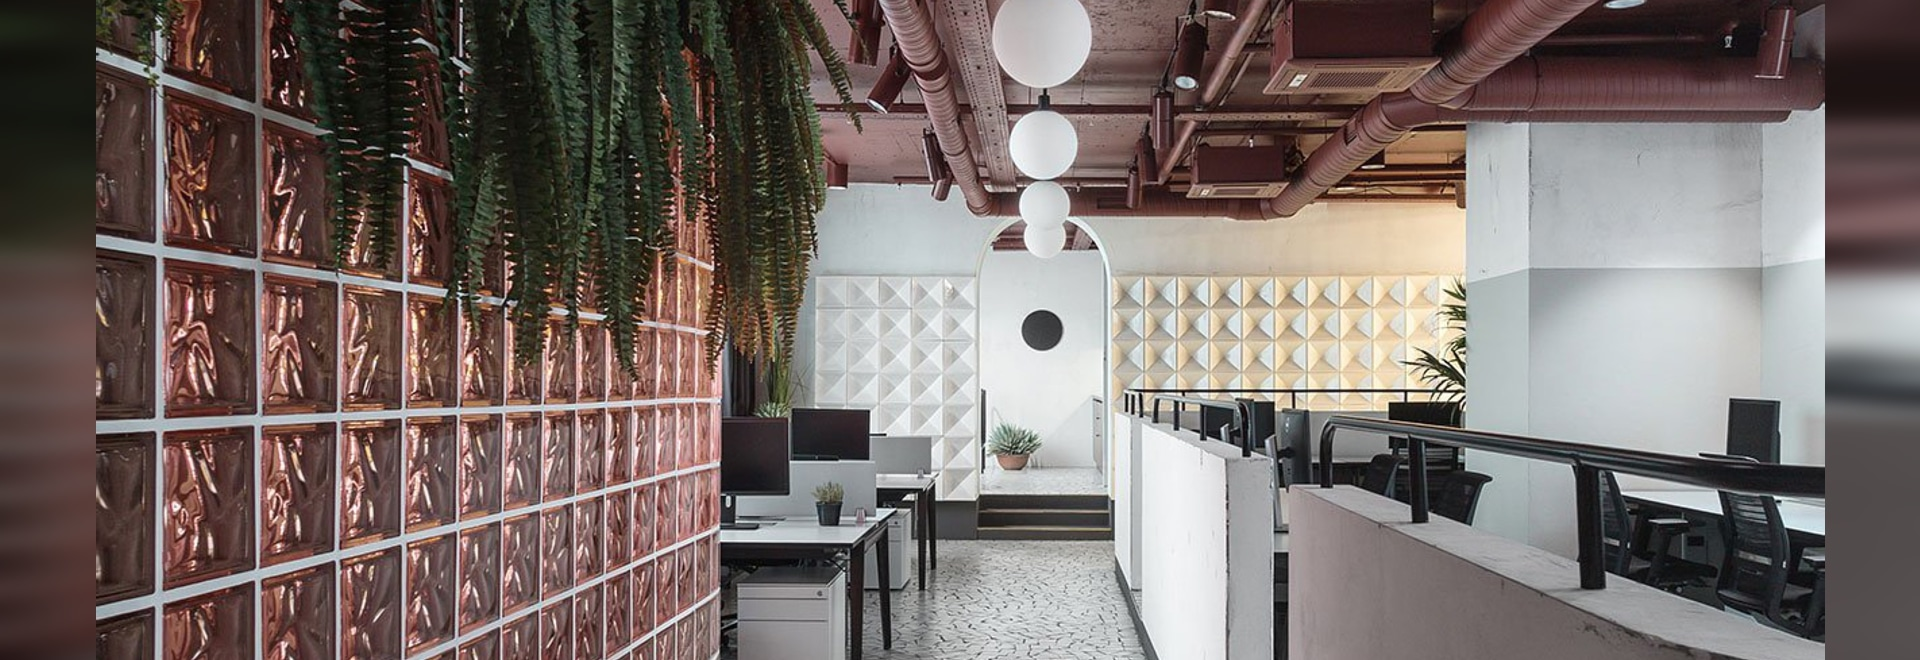 Modern Meets Homage in the Offices of Vizor Interactive by STUDIO11 in Minsk, Belarus